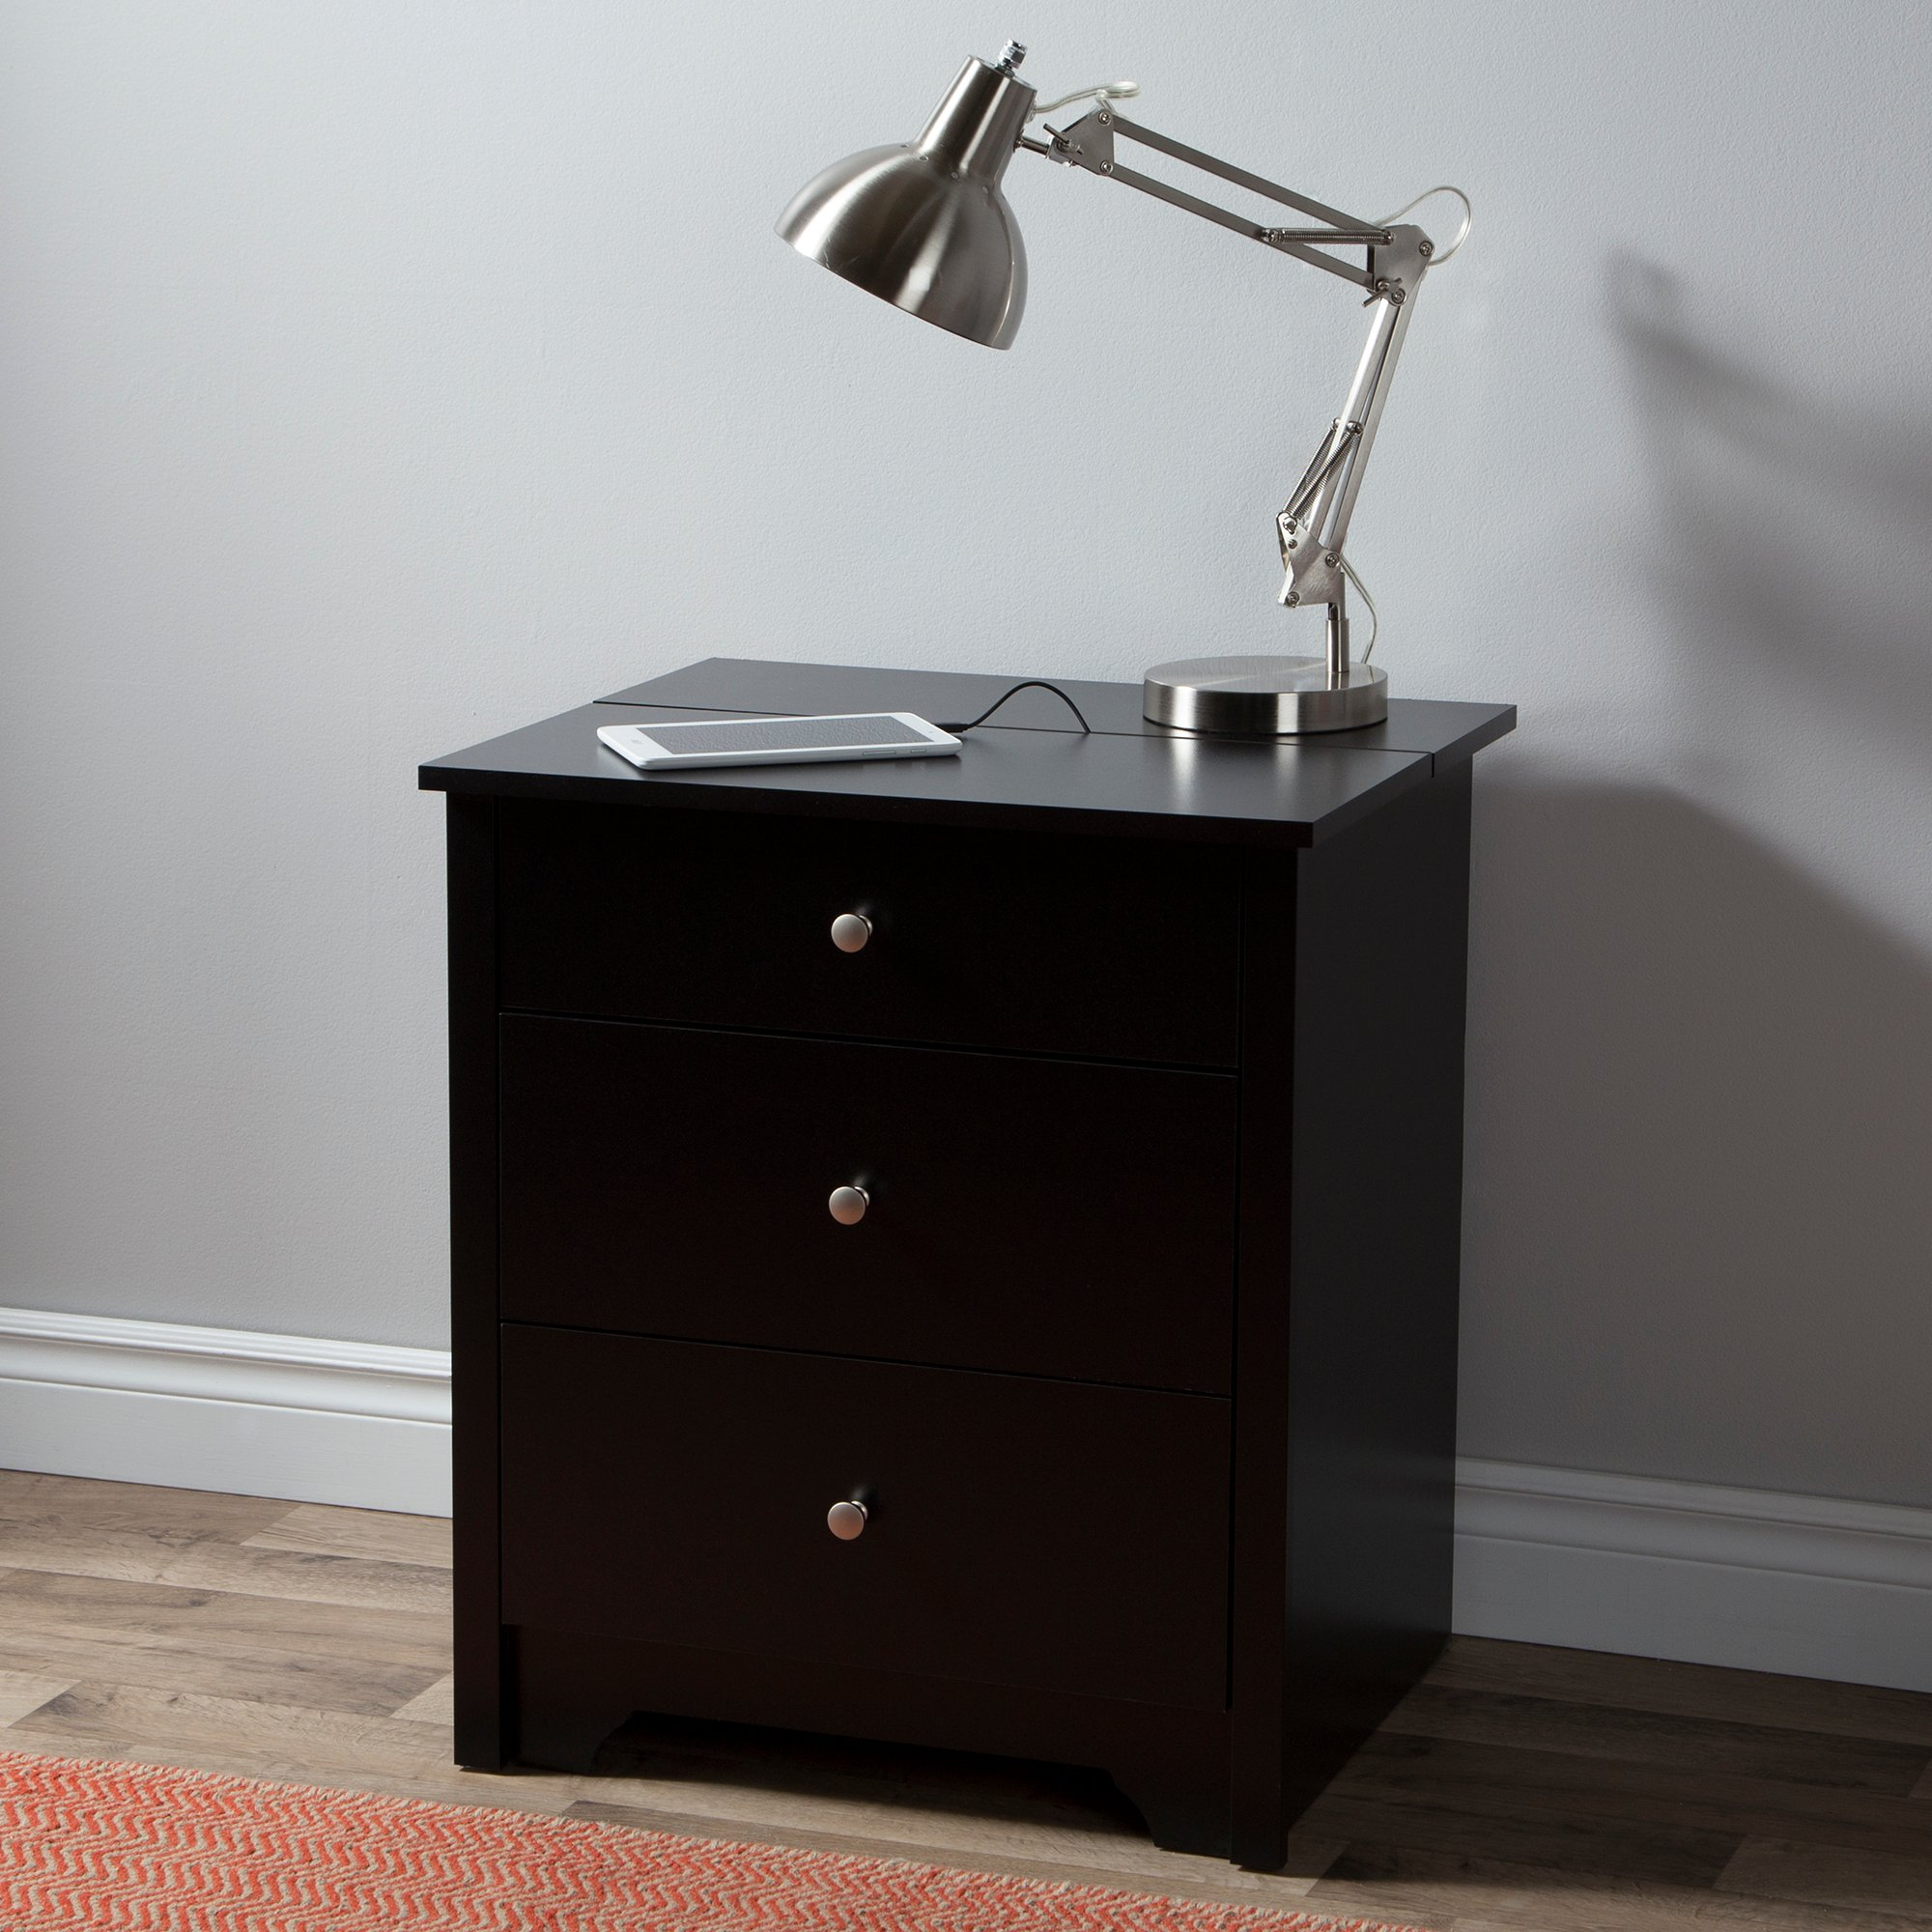 South Shore Vito Nightstand with 2 Drawers and Charging Station, Pure Black